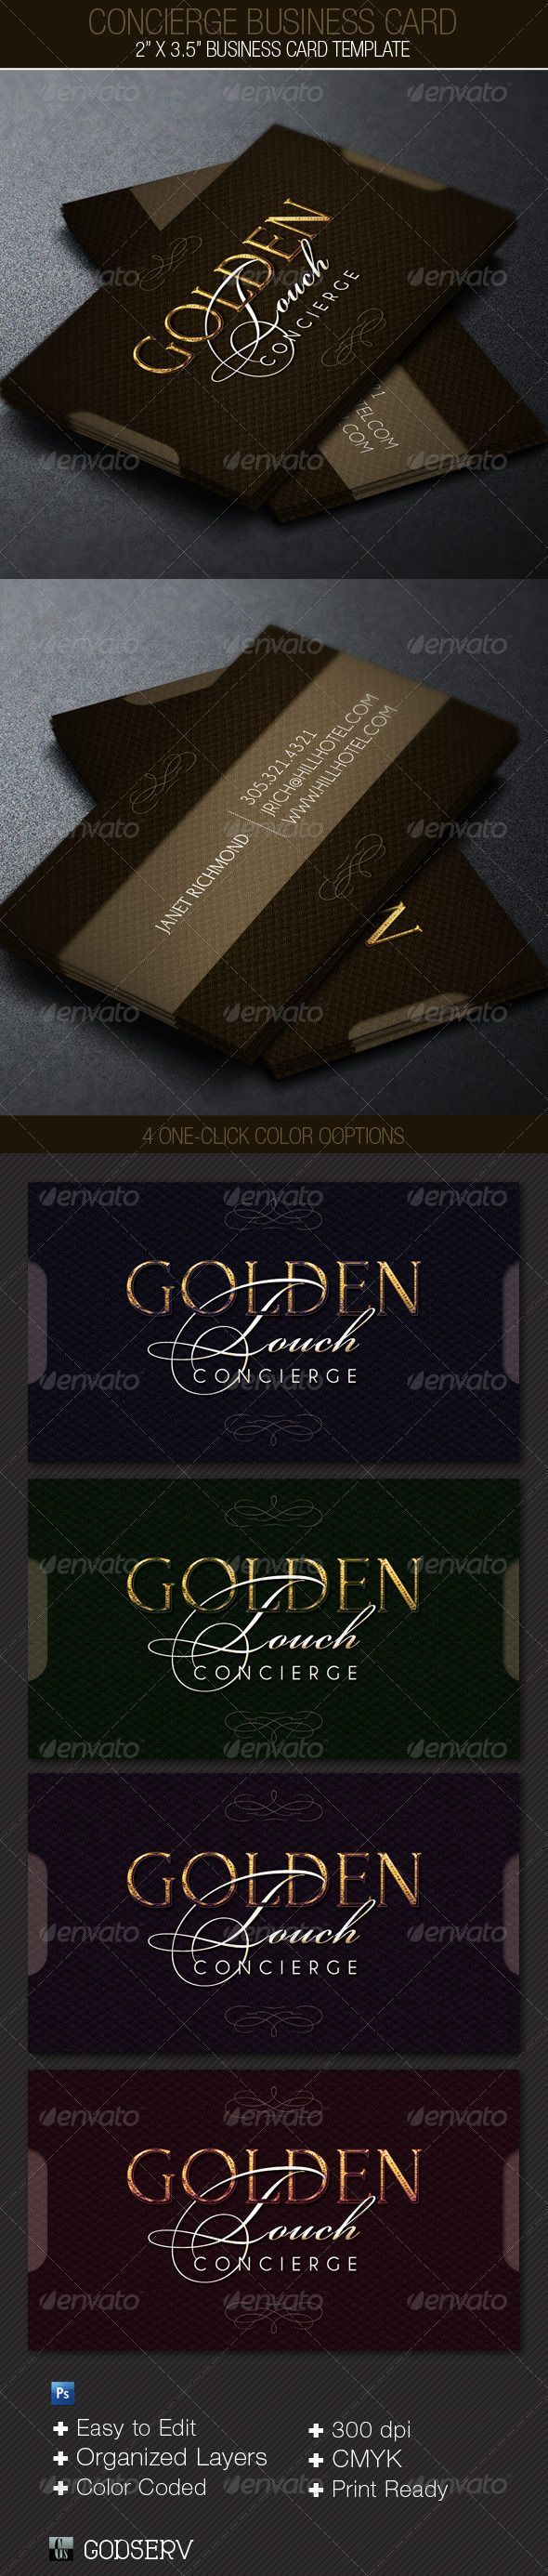 Concierge Business Card Template | Photoshop y Tarjetas de ...